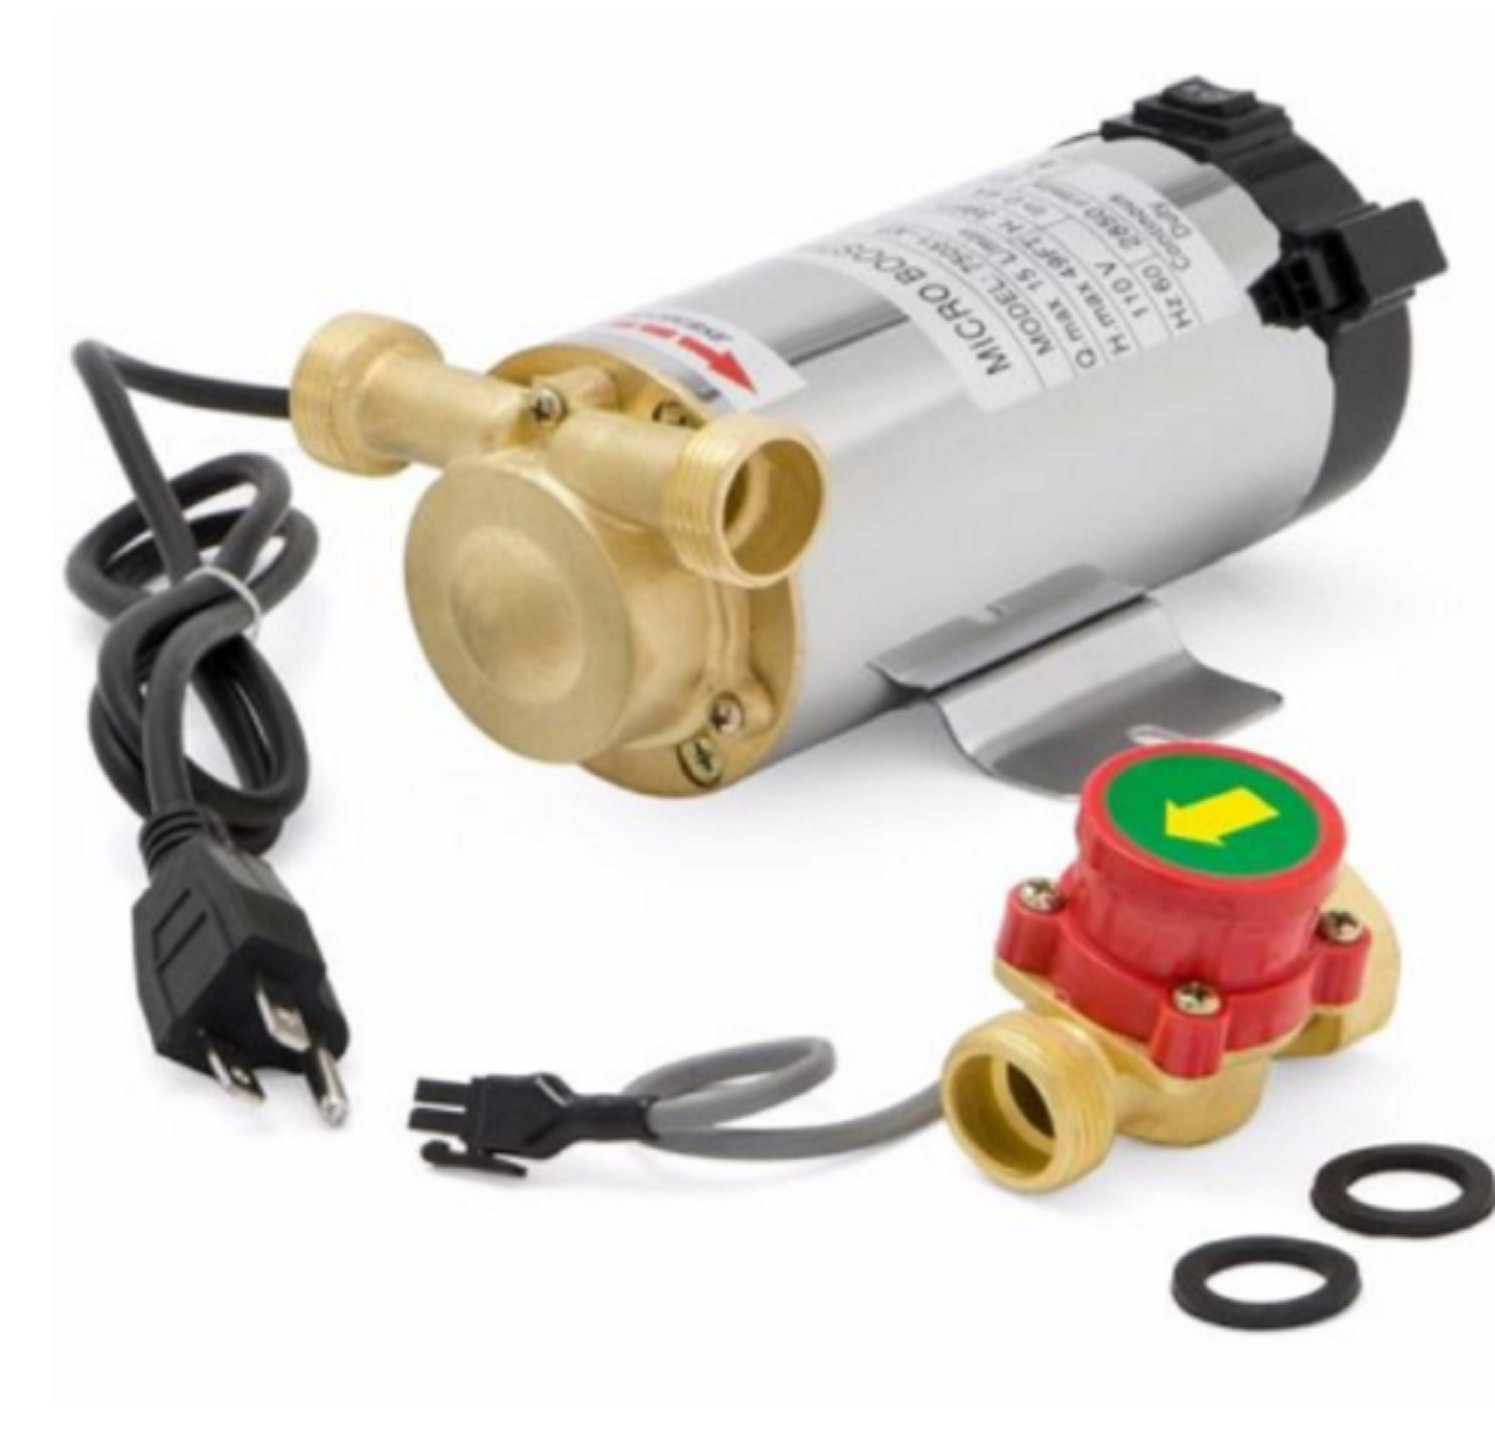 USA Premium Store 100 watt Self Priming sink facucet Shower Pressure Water Booster Stainless Pump by USA Premium Store